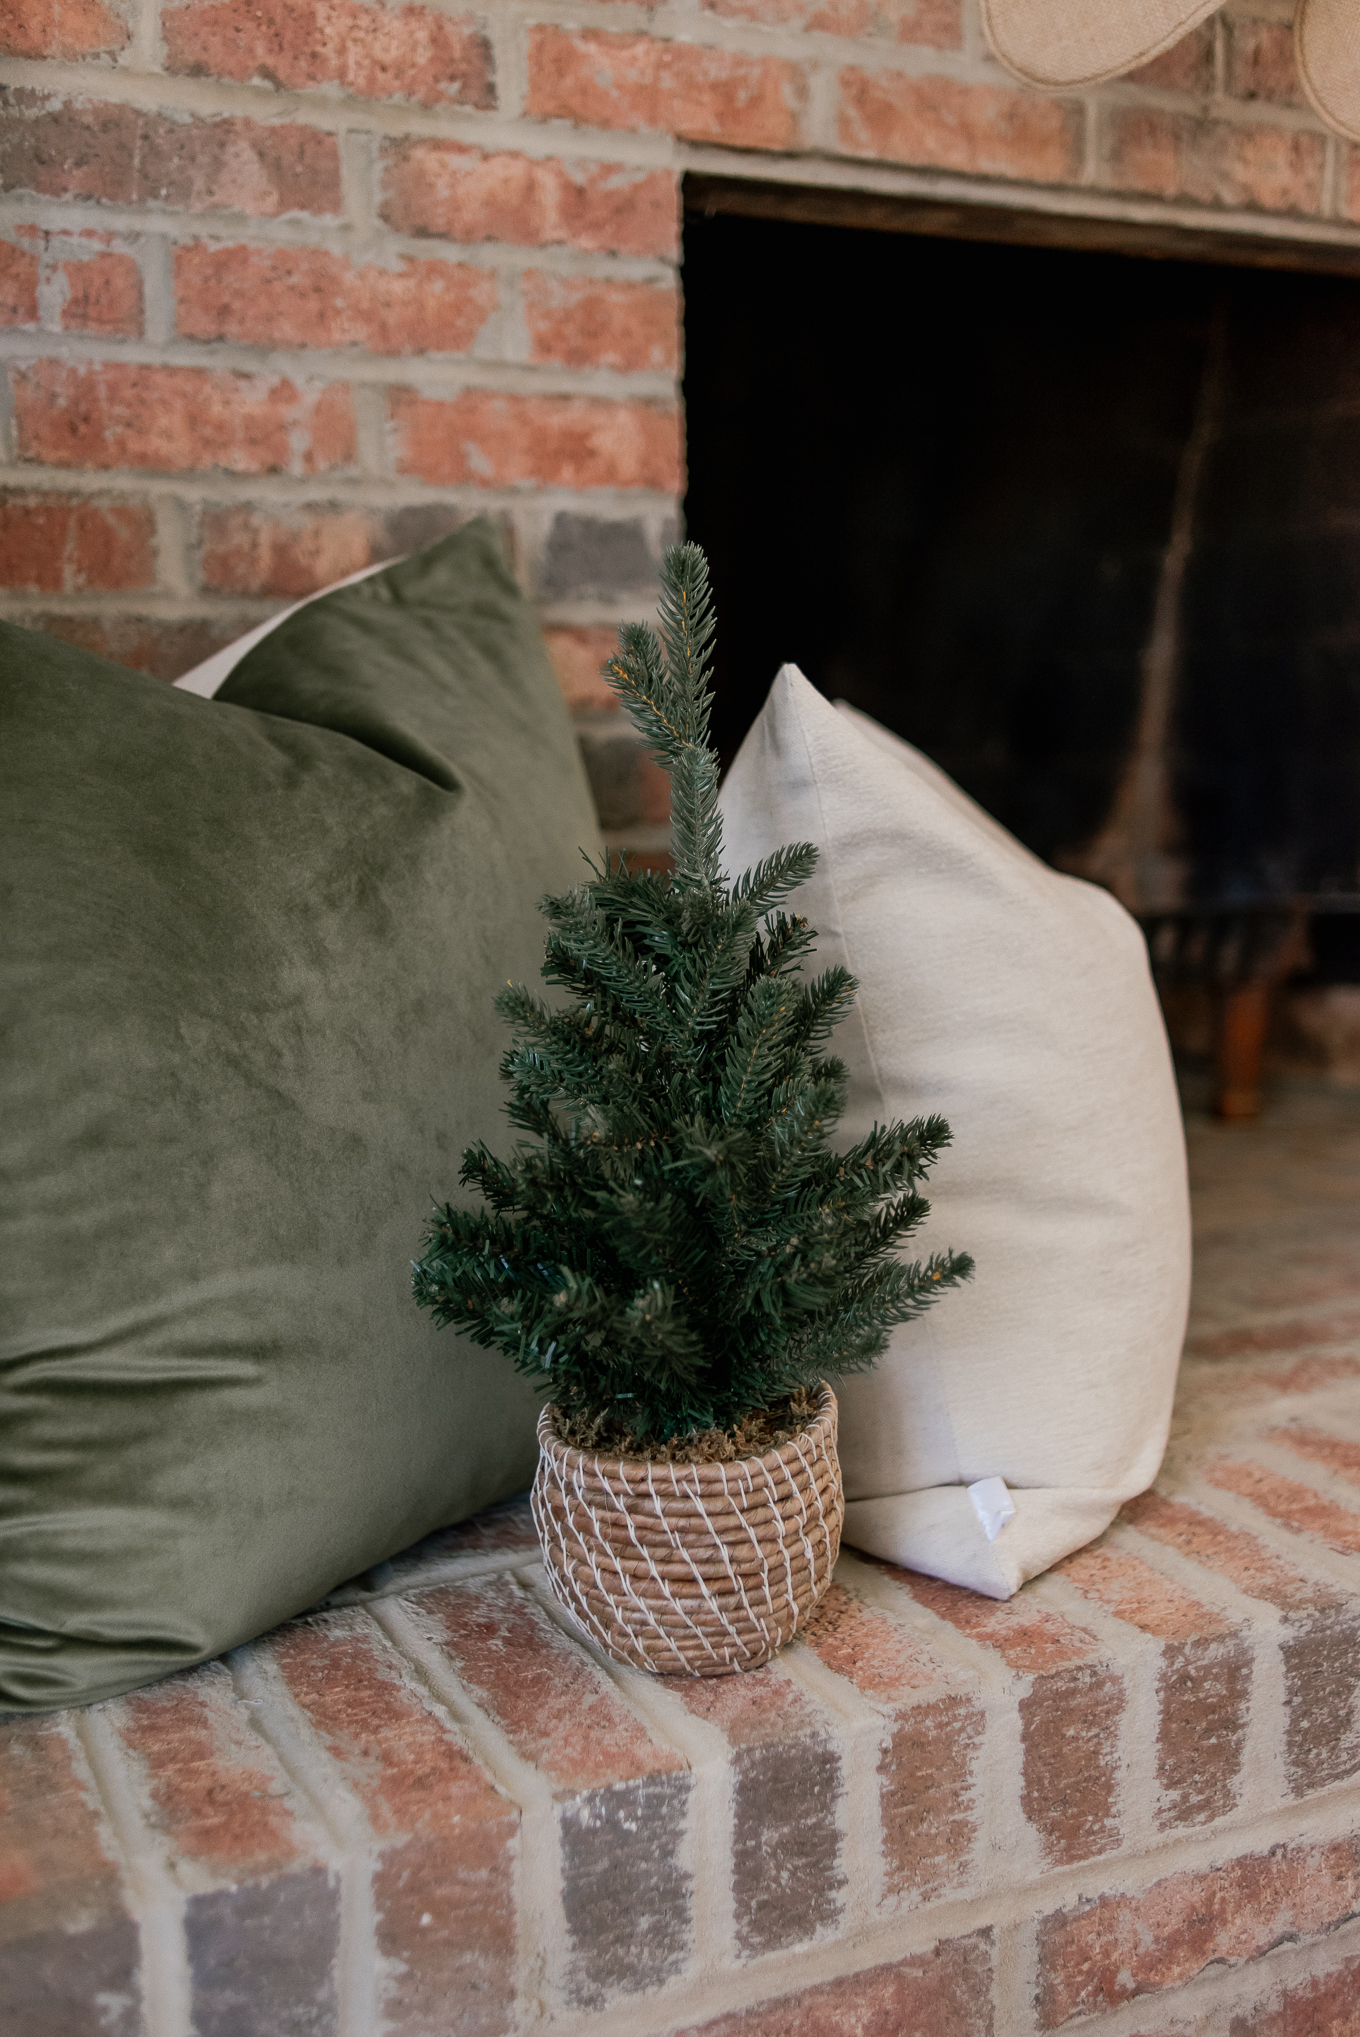 Cozy Christmas Decor | Fireplace Christmas Decor | Louella Reese